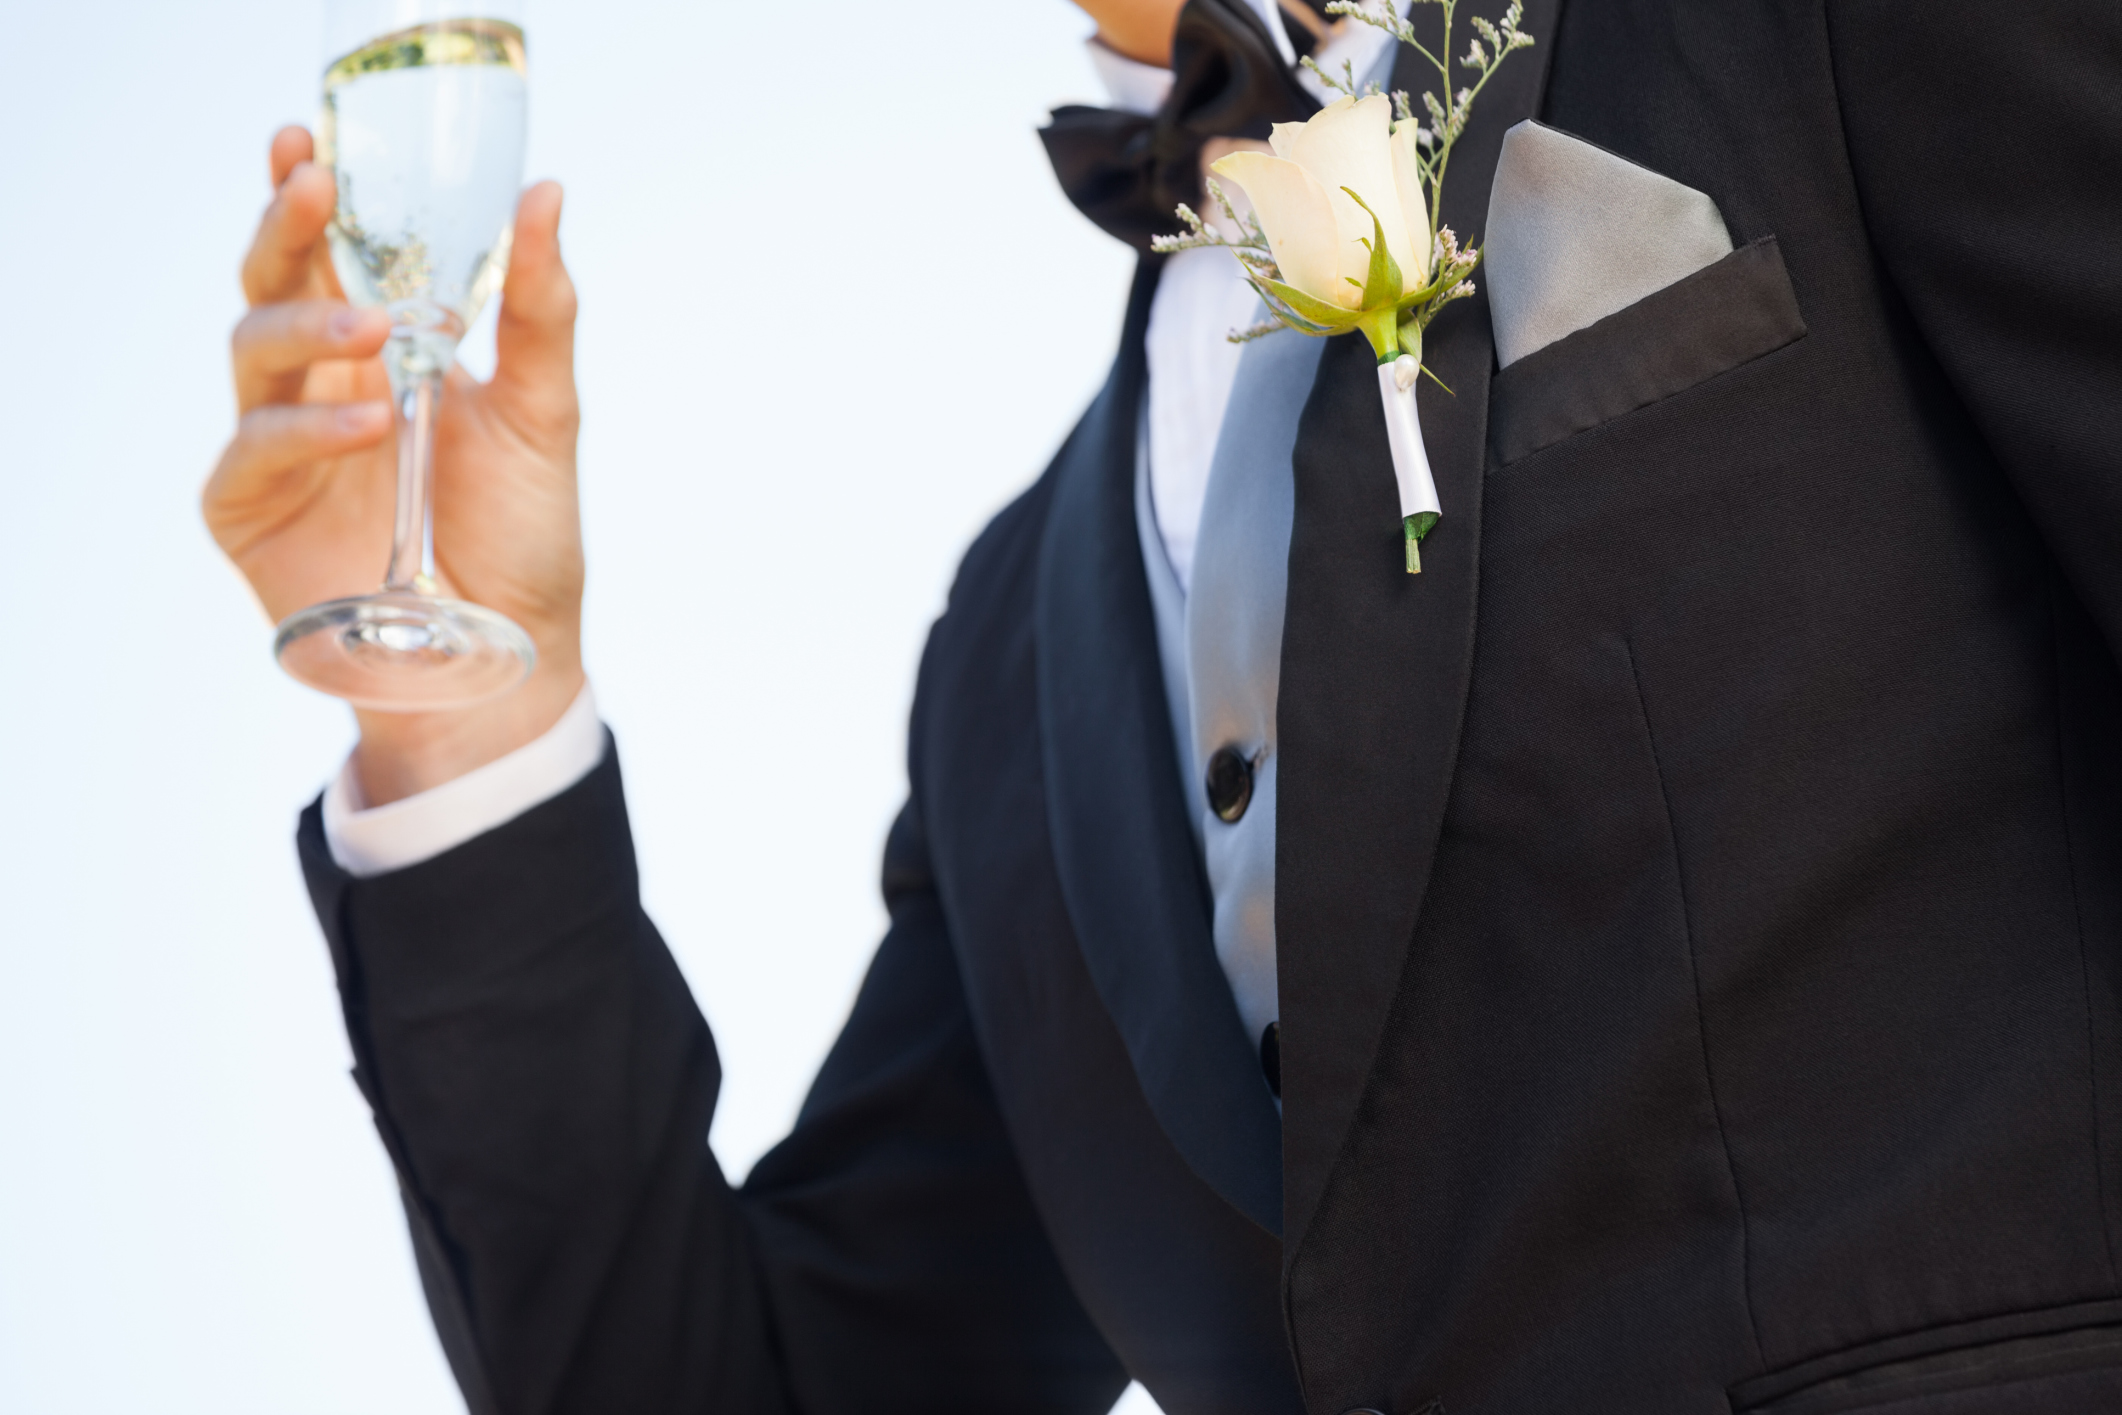 Wedding suit hire - Articles - Easy Weddings